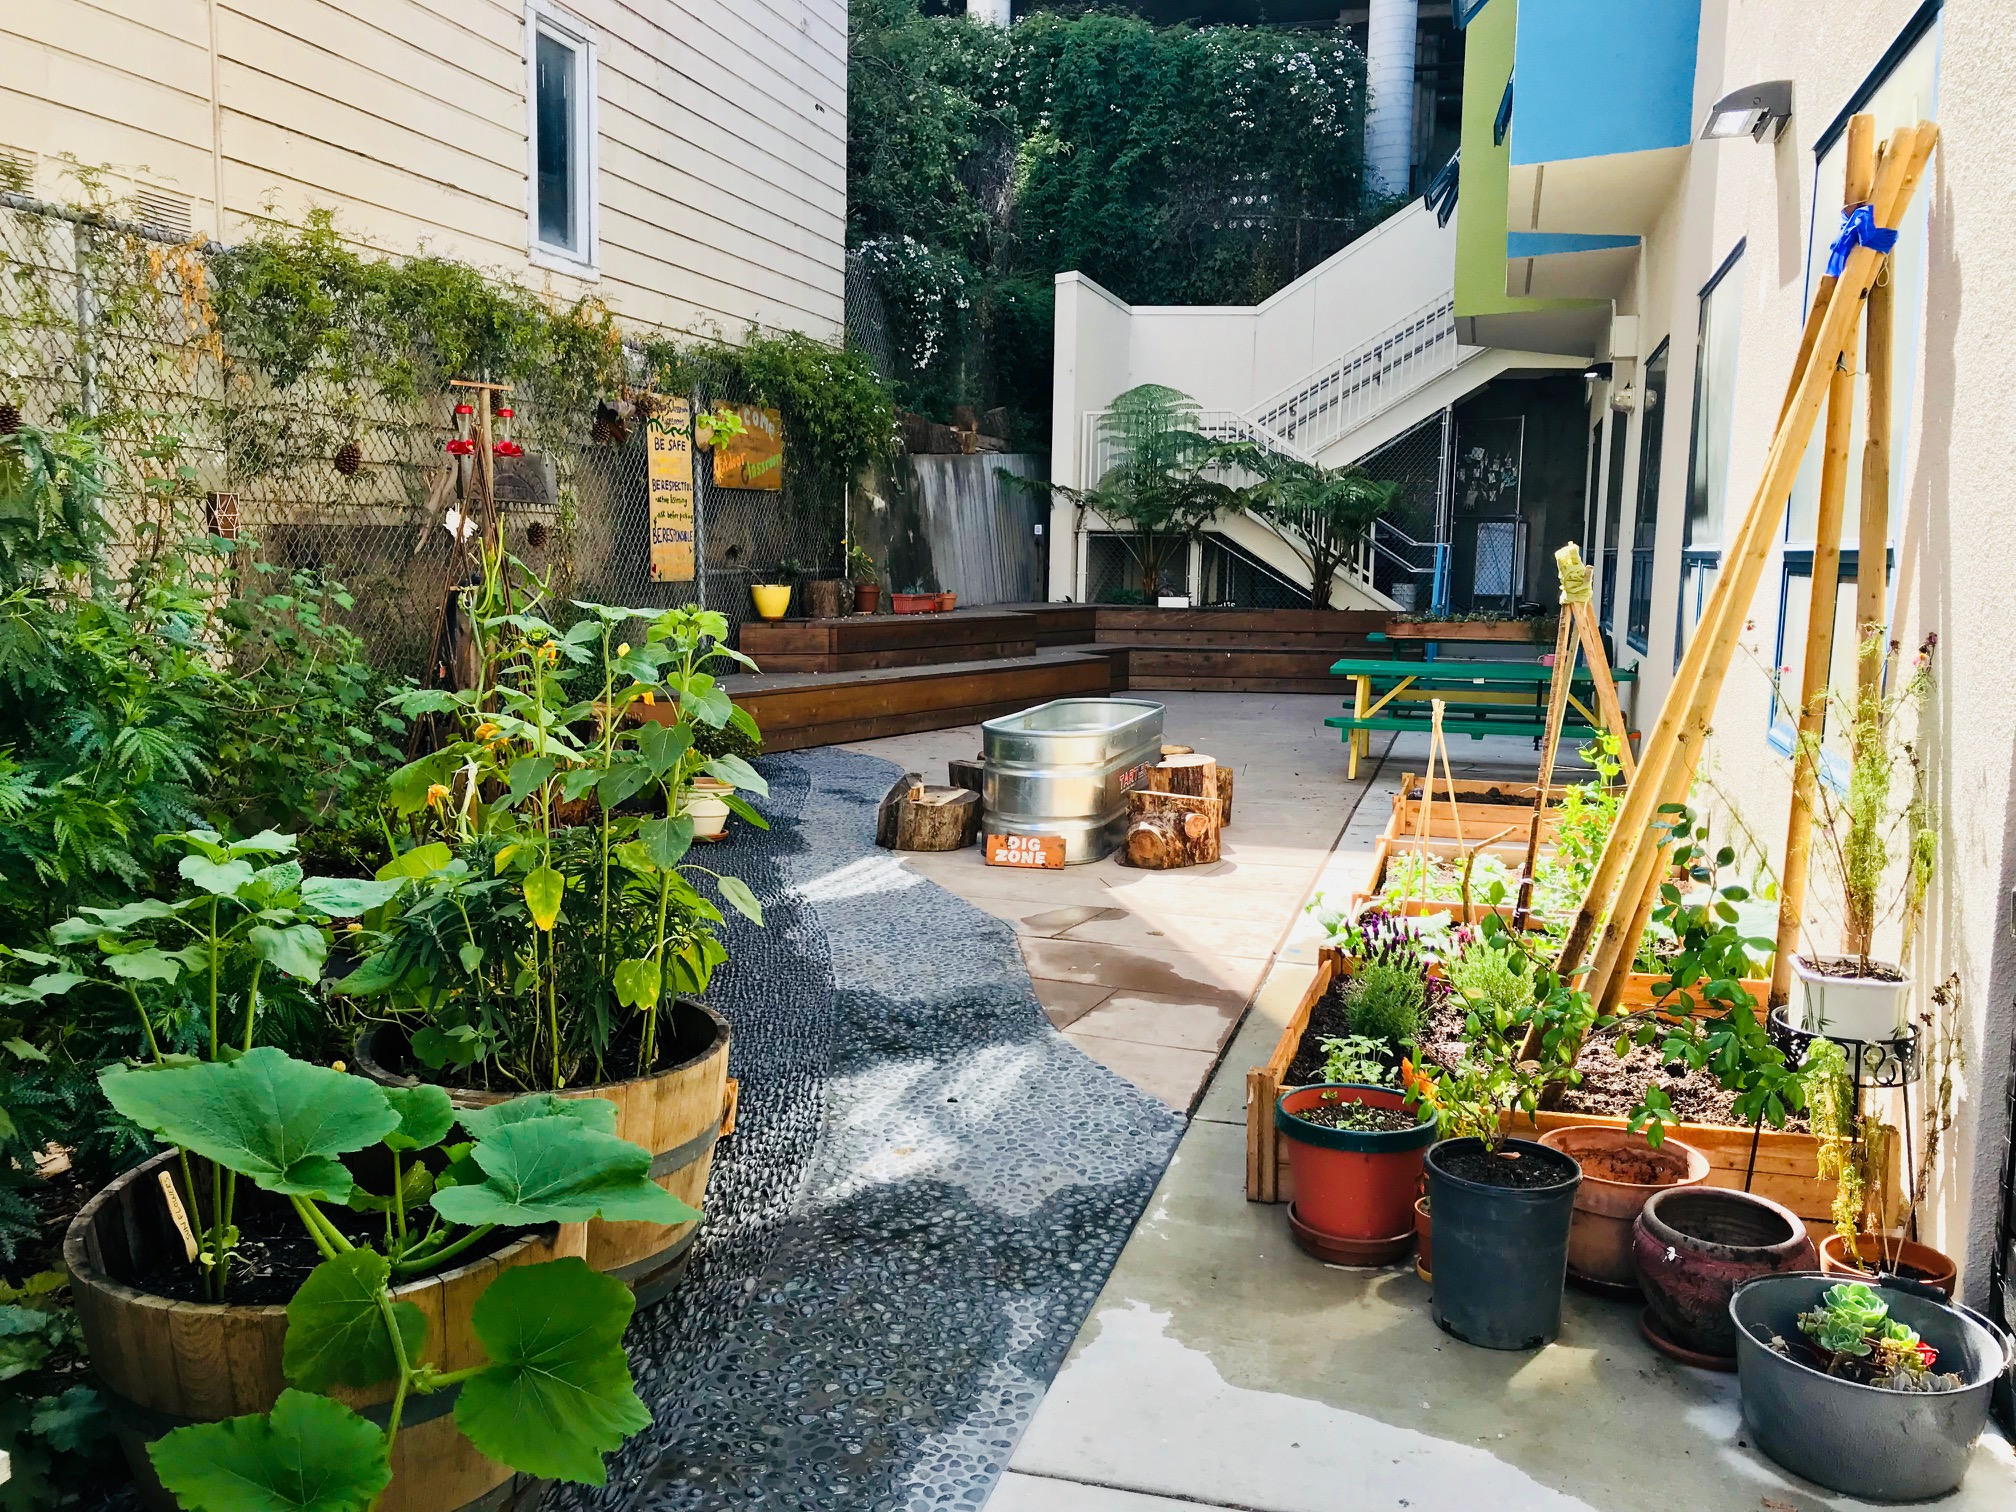 Our Outdoor Classroom contains a Dig Zone, hummingbird feeders, vegetable and flower beds, and picnic tables for doing projects and eating together. We hope to add a rain barrel this year.